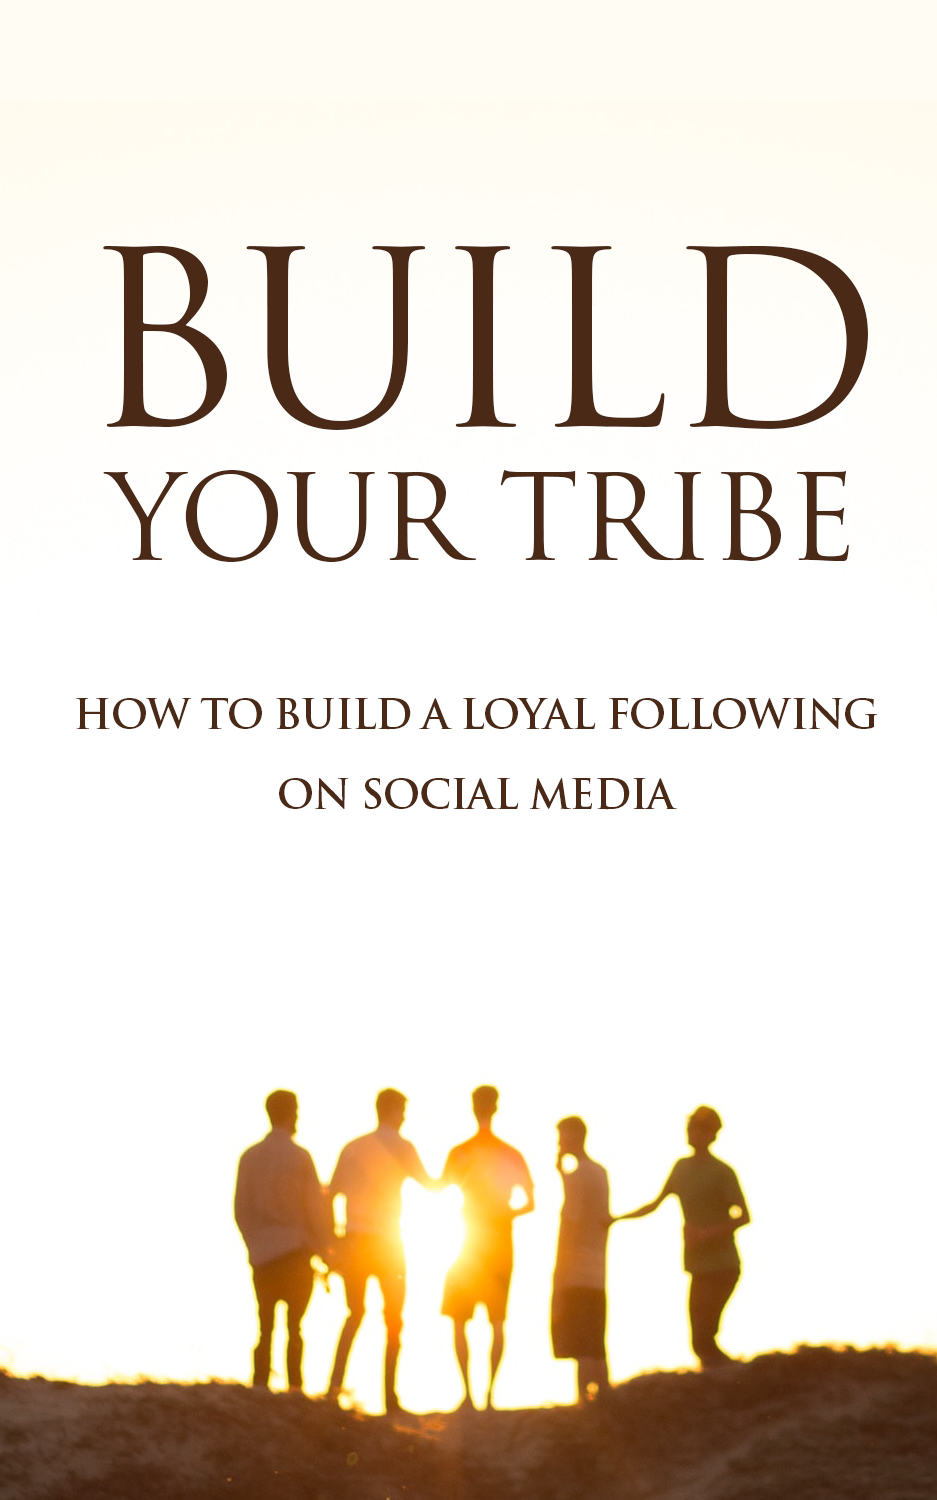 Build Your Tribe (How To Build A Loyal Following On Social Media) Ebook's Ebook Image